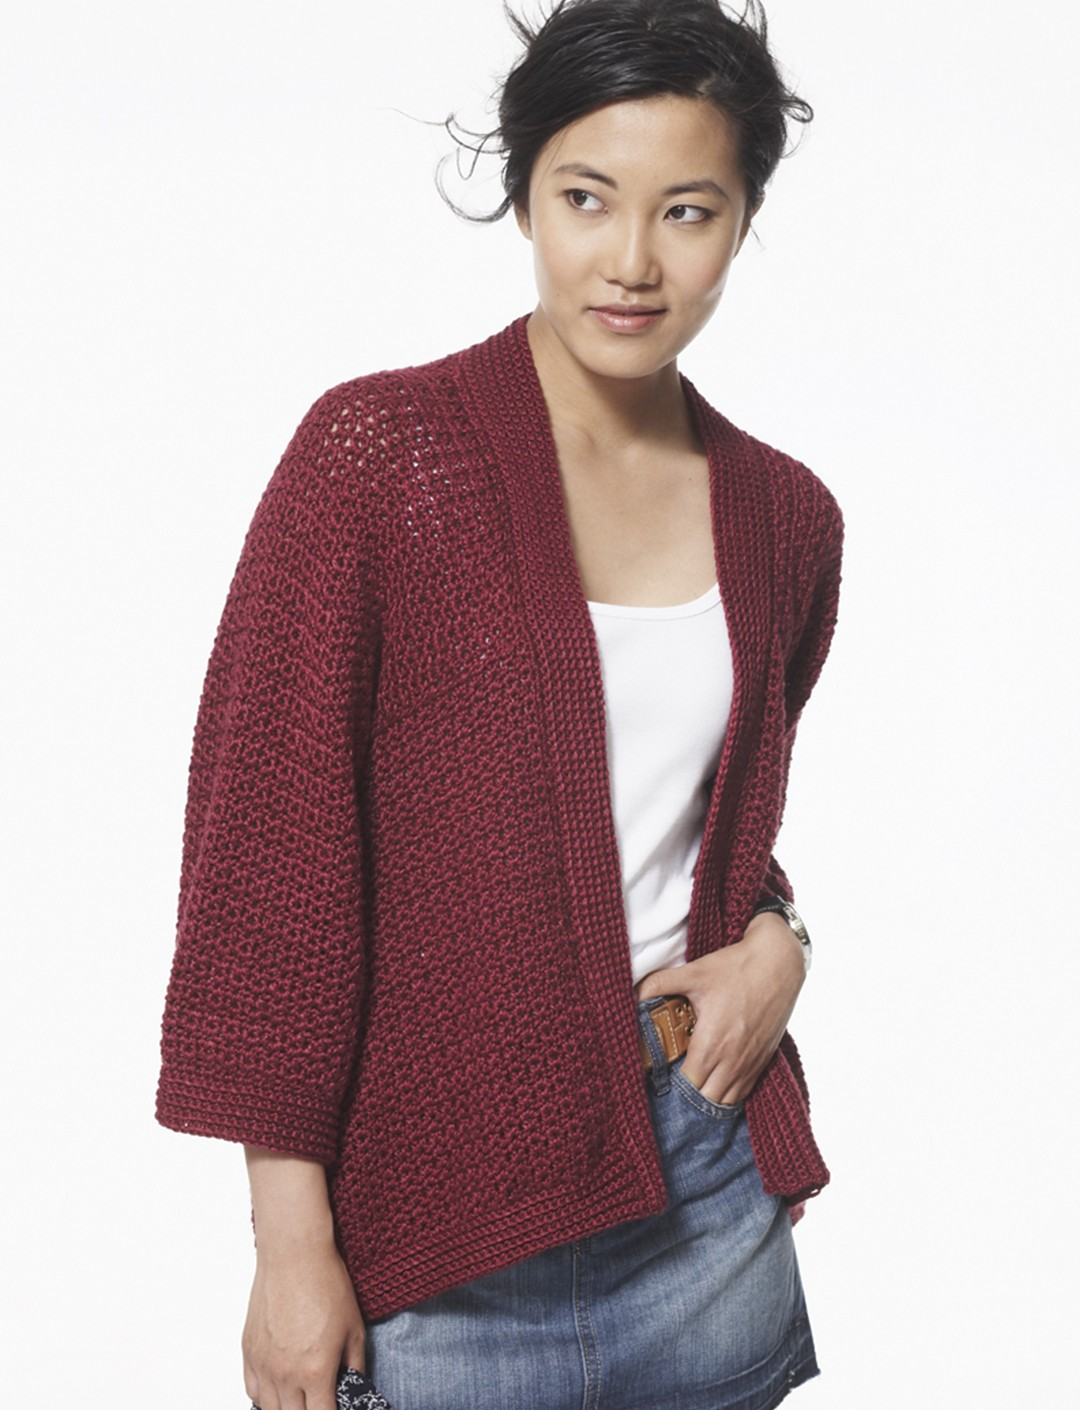 Free Crochet Patterns For Kimono Sweater : Patons Soft Drape Kimono Jacket, Crochet Pattern ...